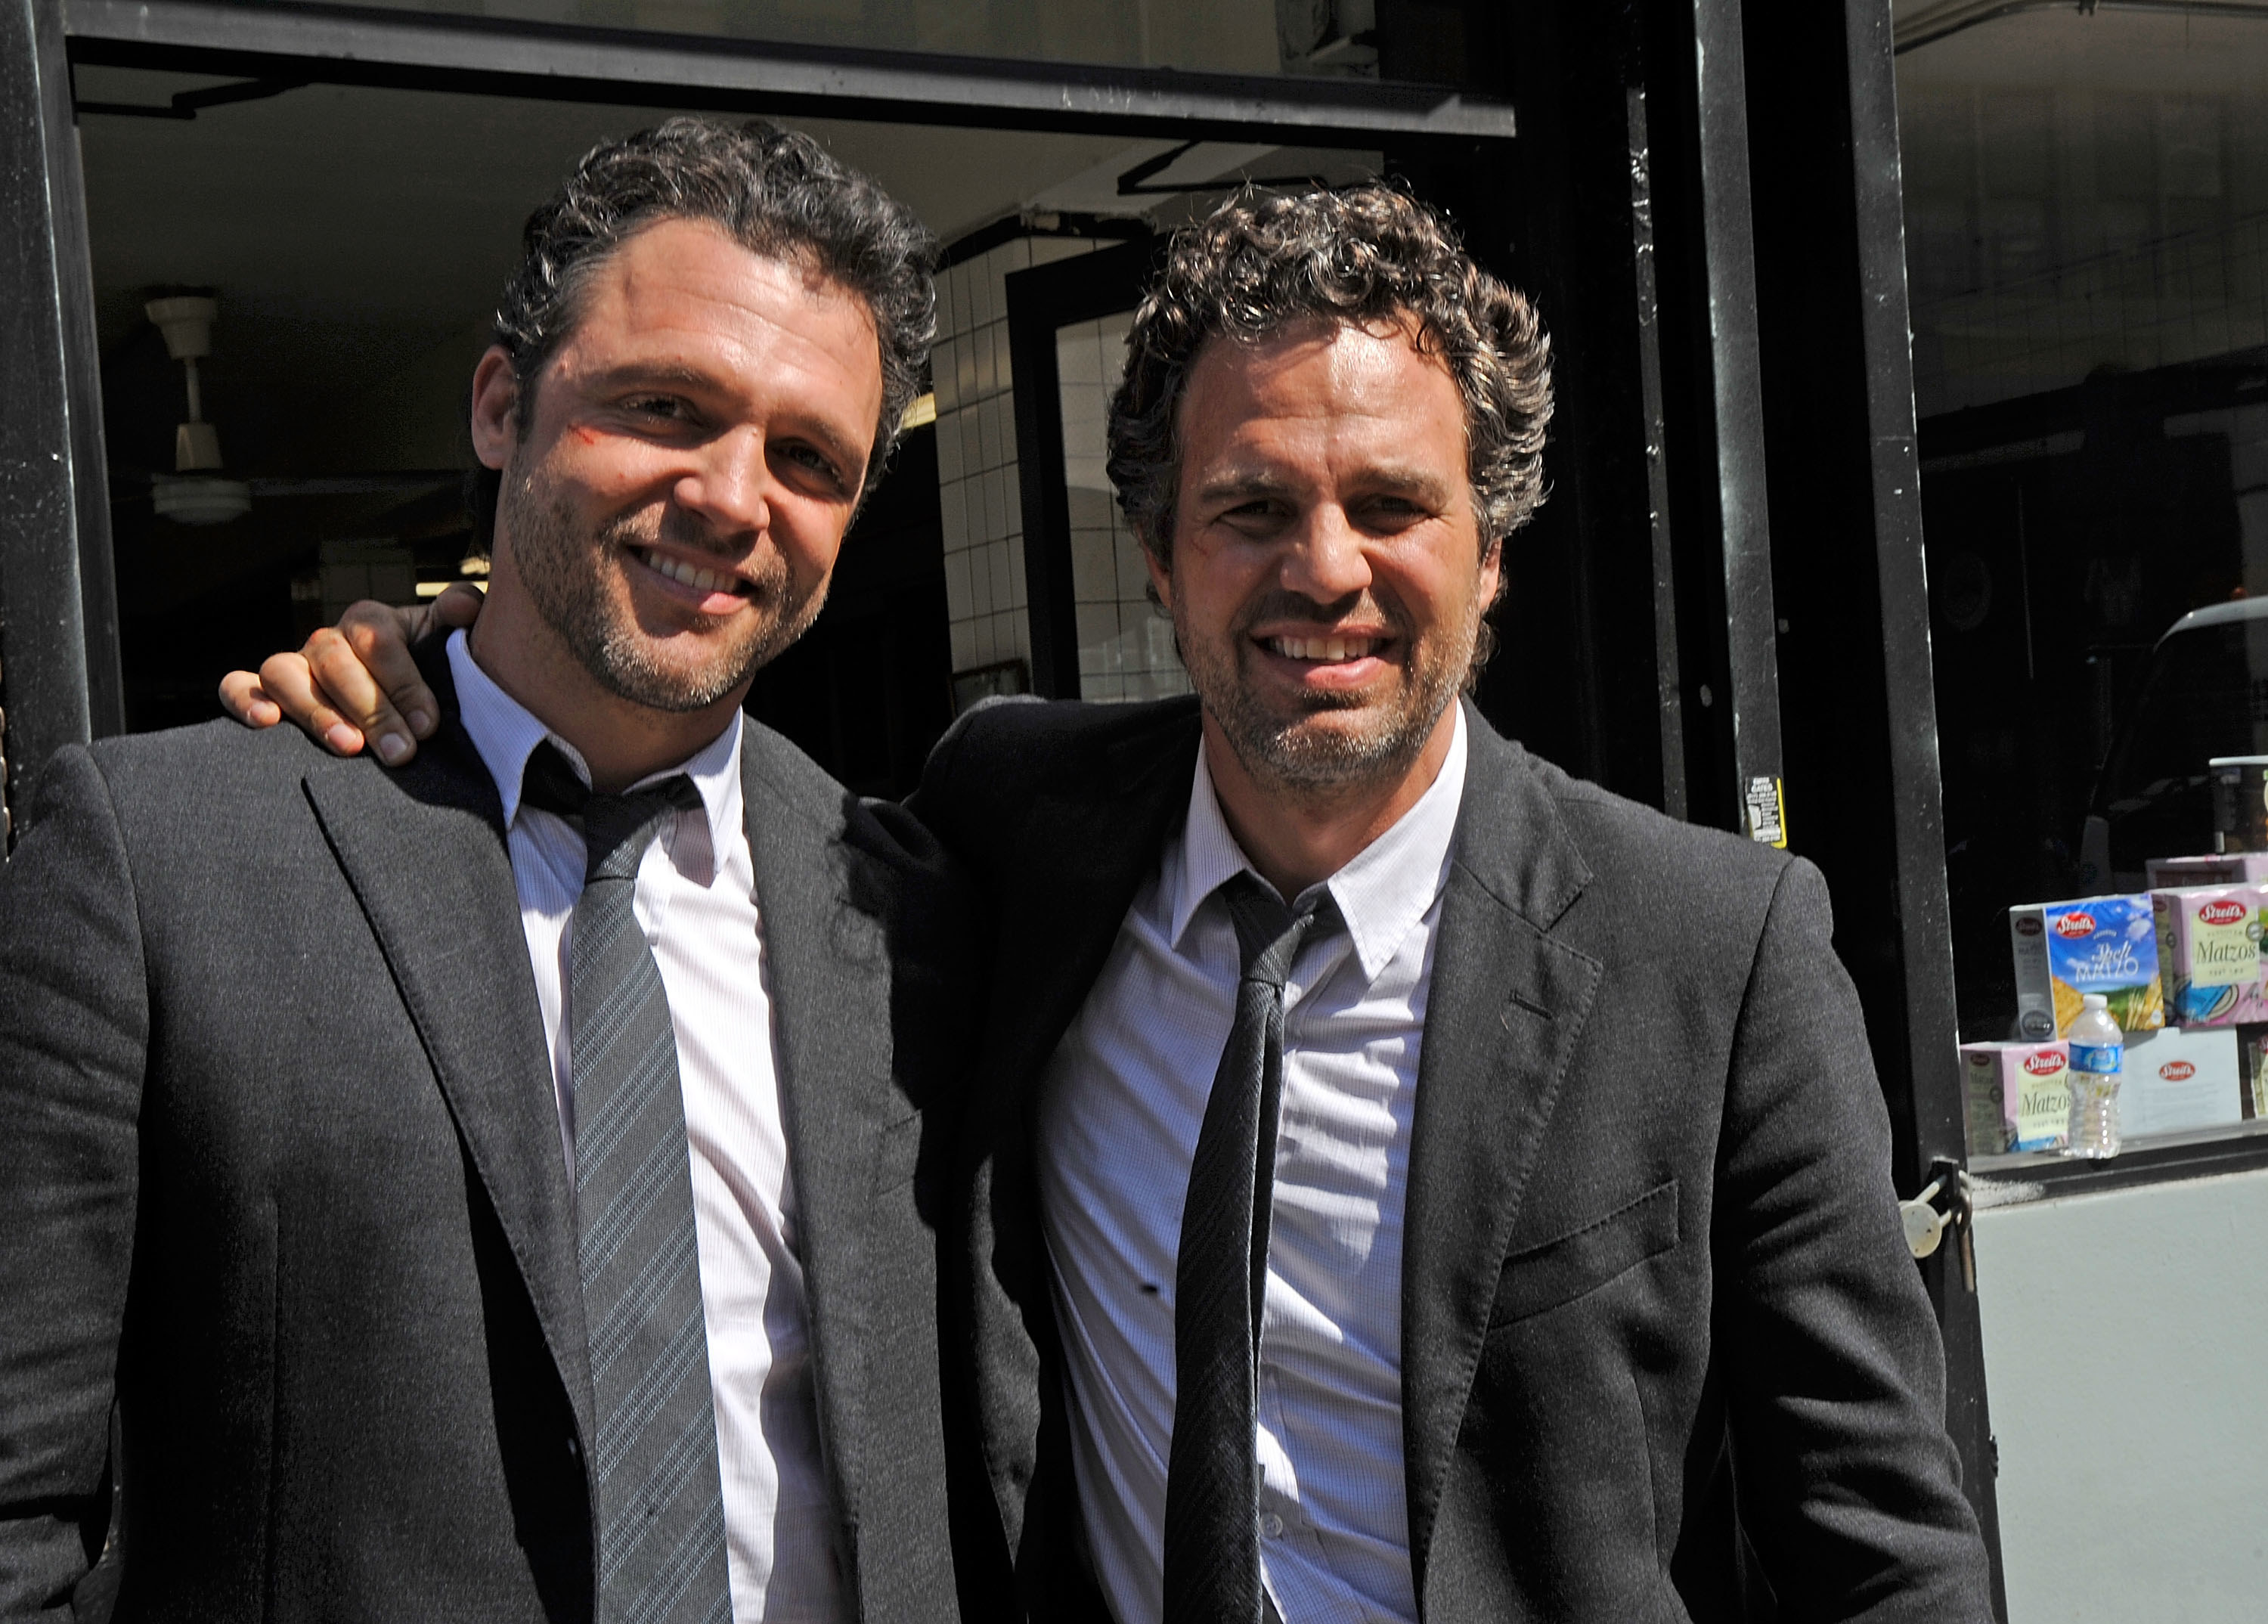 Mark Ruffalo and his stunt double smiling for a photo